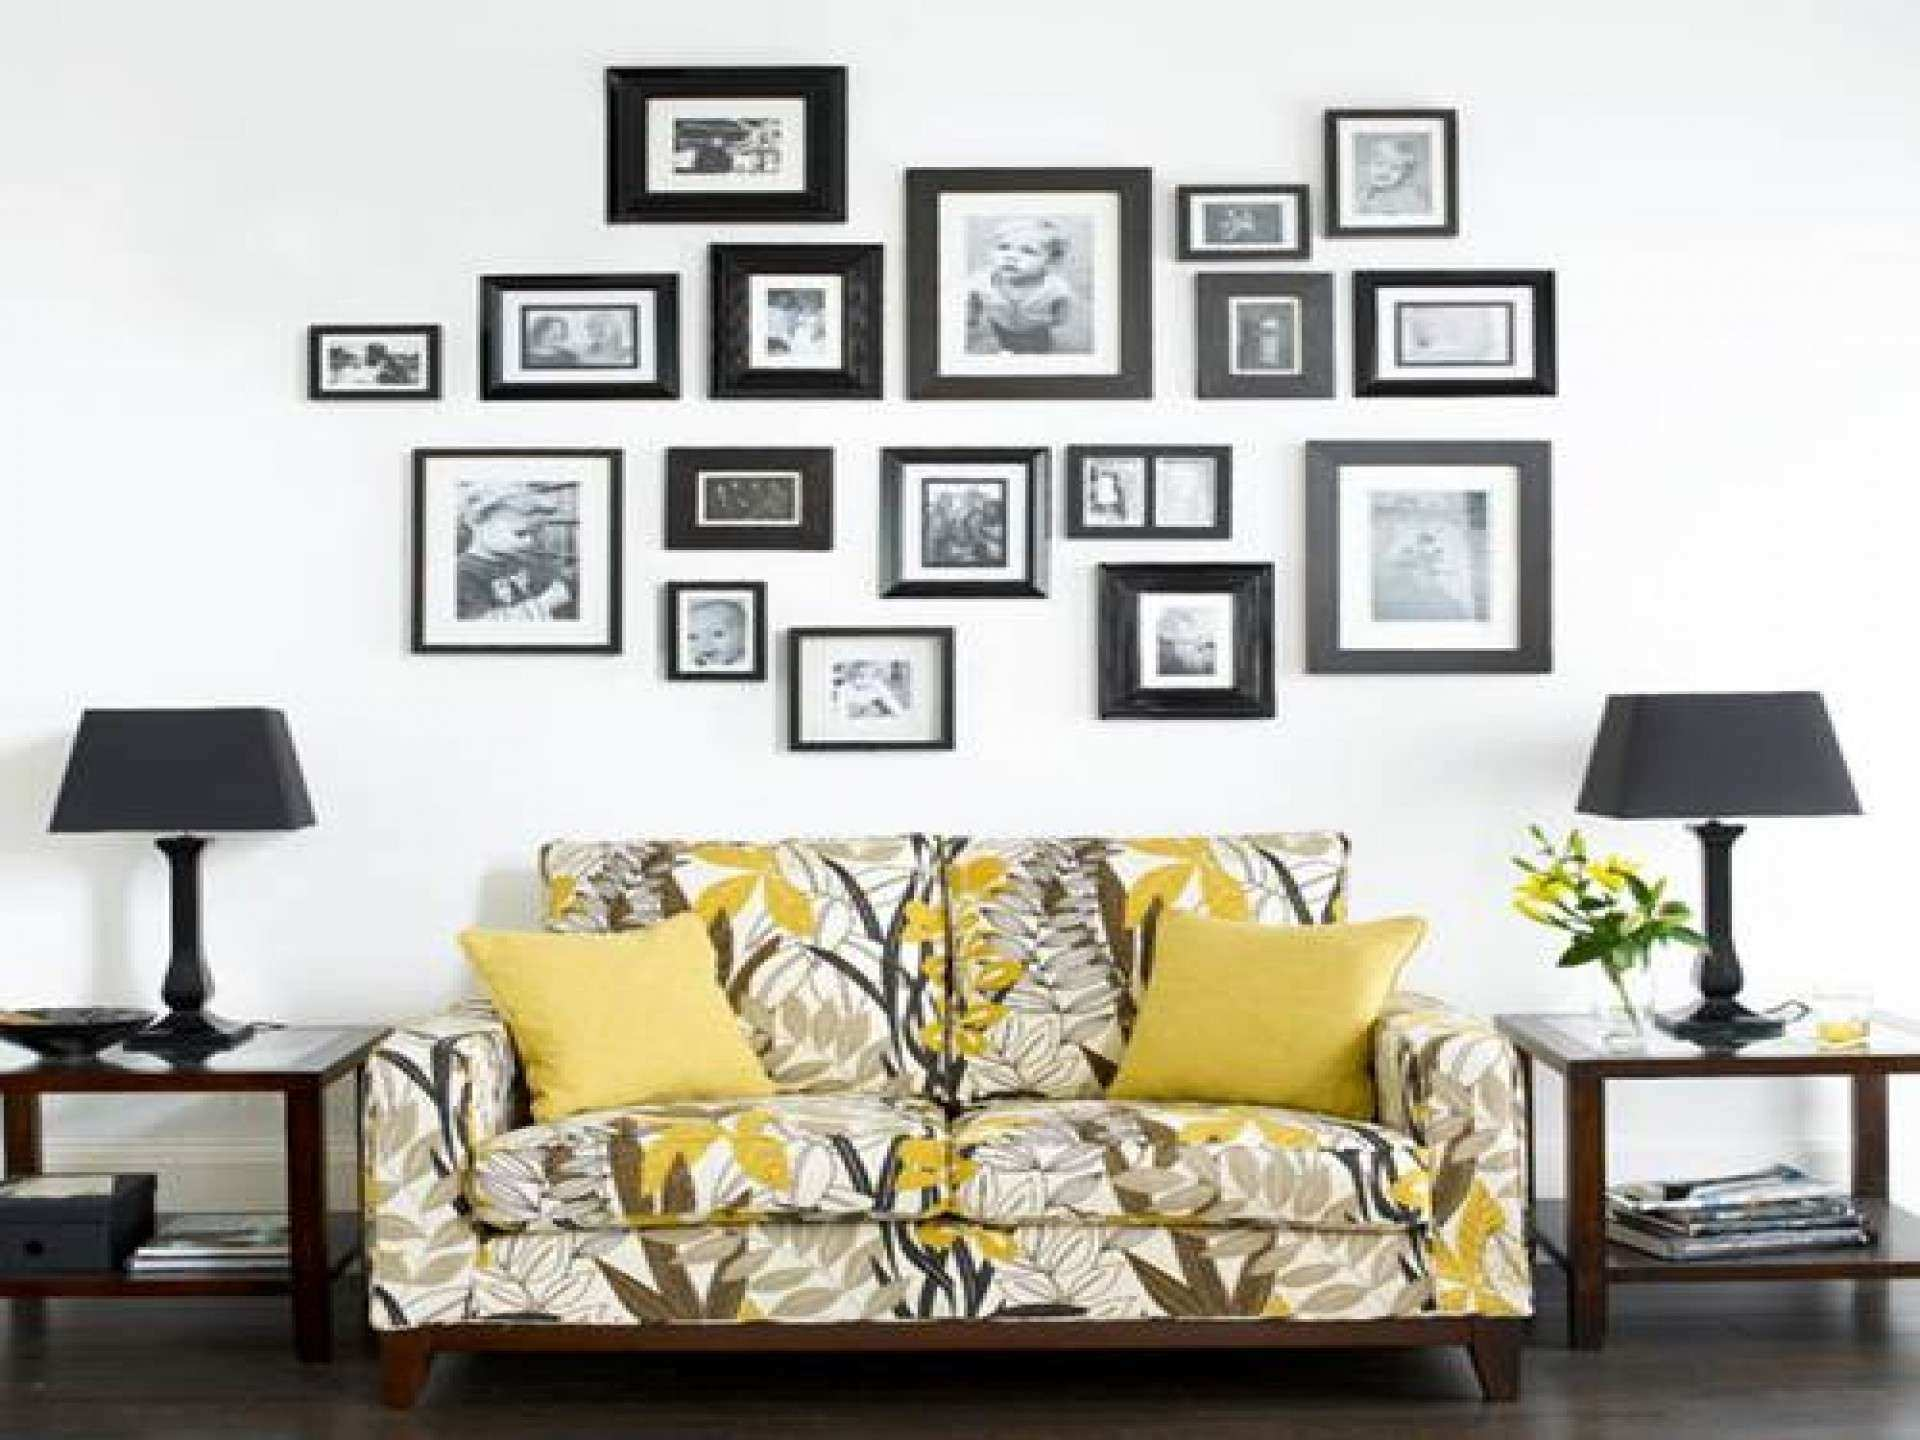 Delightful Framed Wall Art For Living Room Beautiful Remarkable Design Wall Hangings  For Ideas With Framed Art